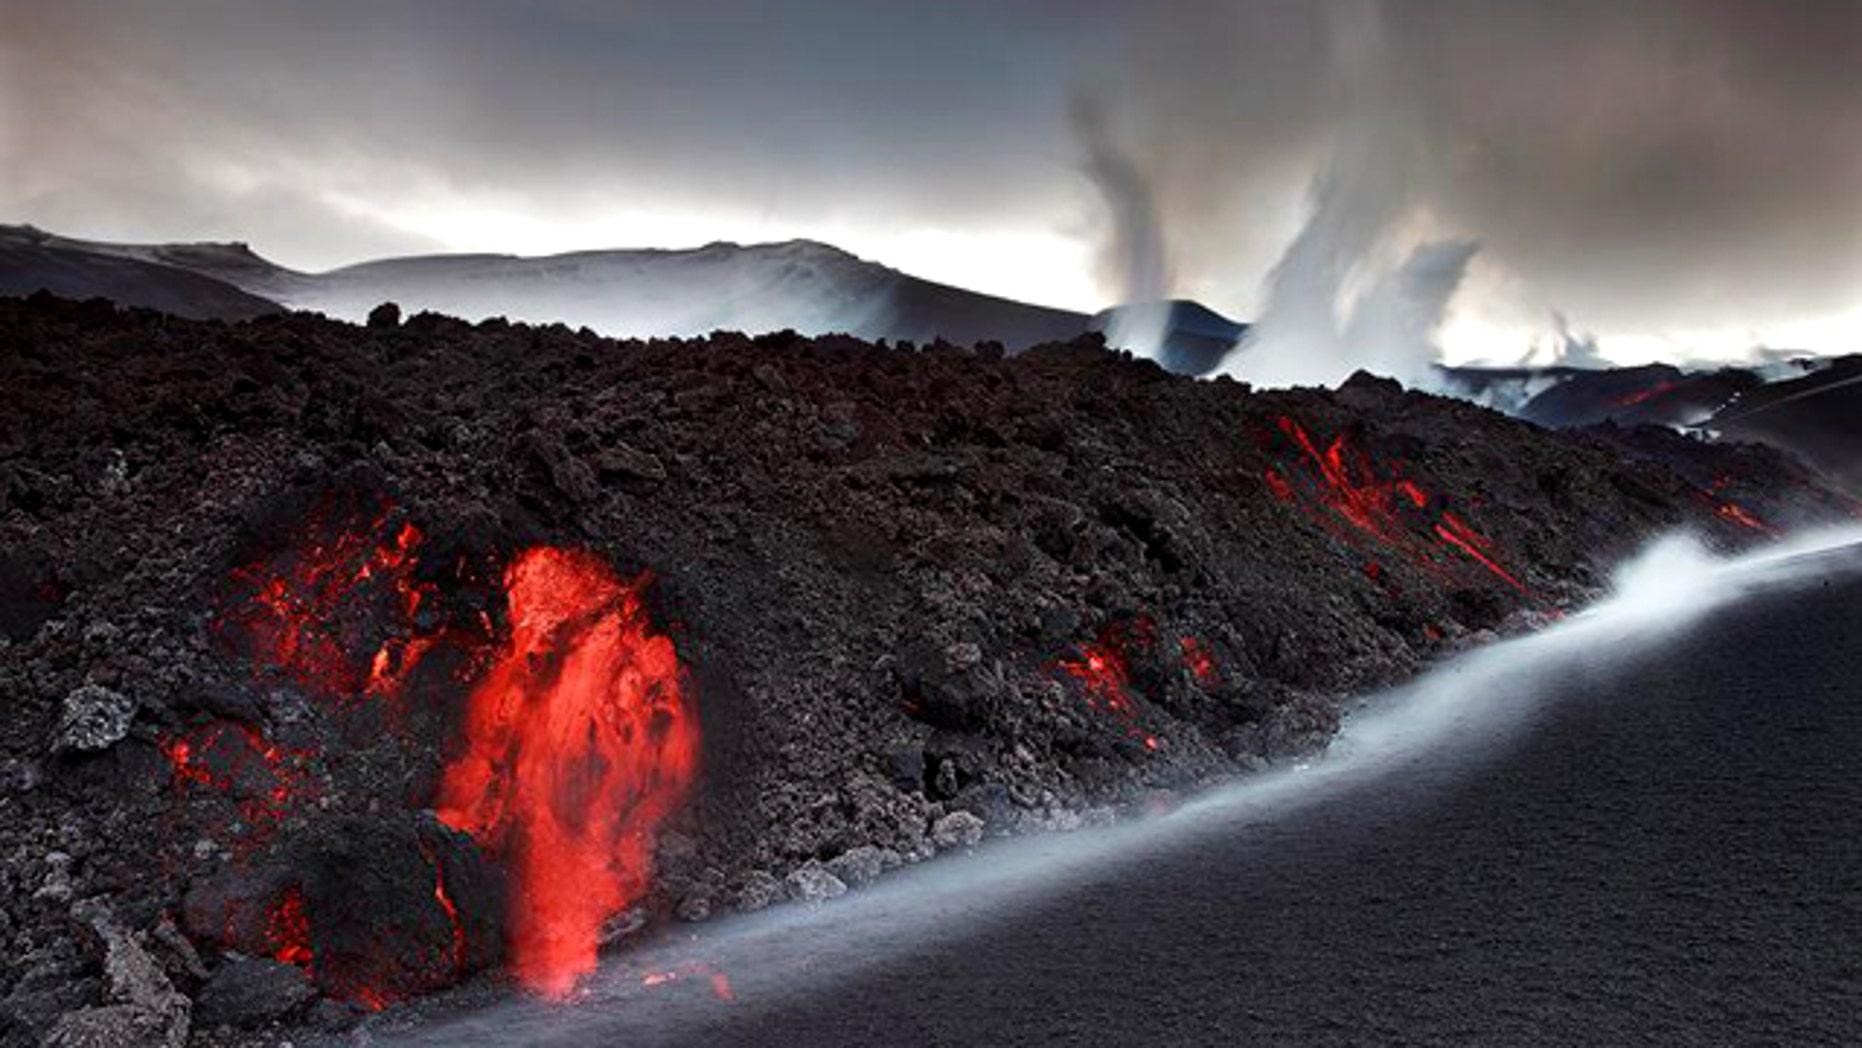 Smoke and steam from the volcano under the Eyjafjallajokull glacier in Iceland have forced hundreds of people to flee rising floodwaters and disrupted plane traffic across Europe.